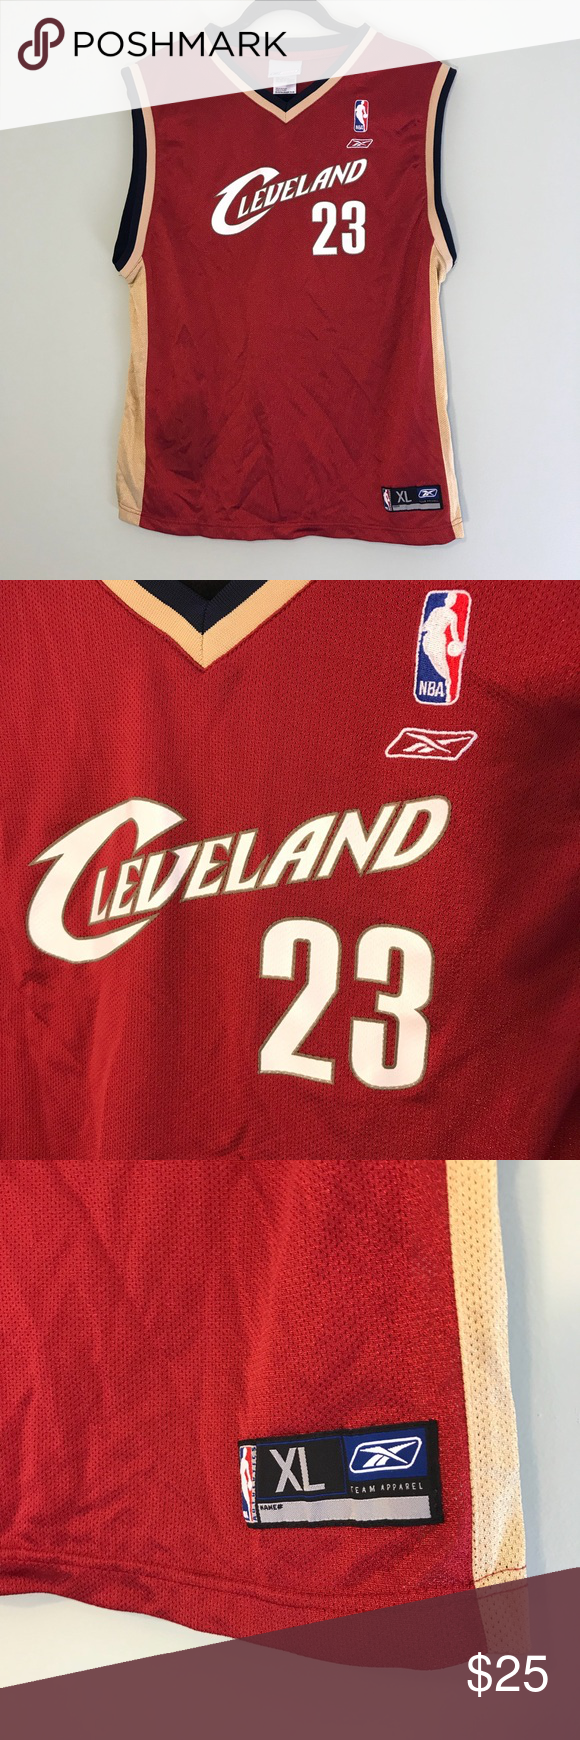 9ce155be52cc Lebron James Retro Colours Reebok Cleveland Jersey • Cleveland Cavaliers  23  Lebron James regular season NBA • Reebok Jersey • Youth XL • EUC (barely  worn) ...